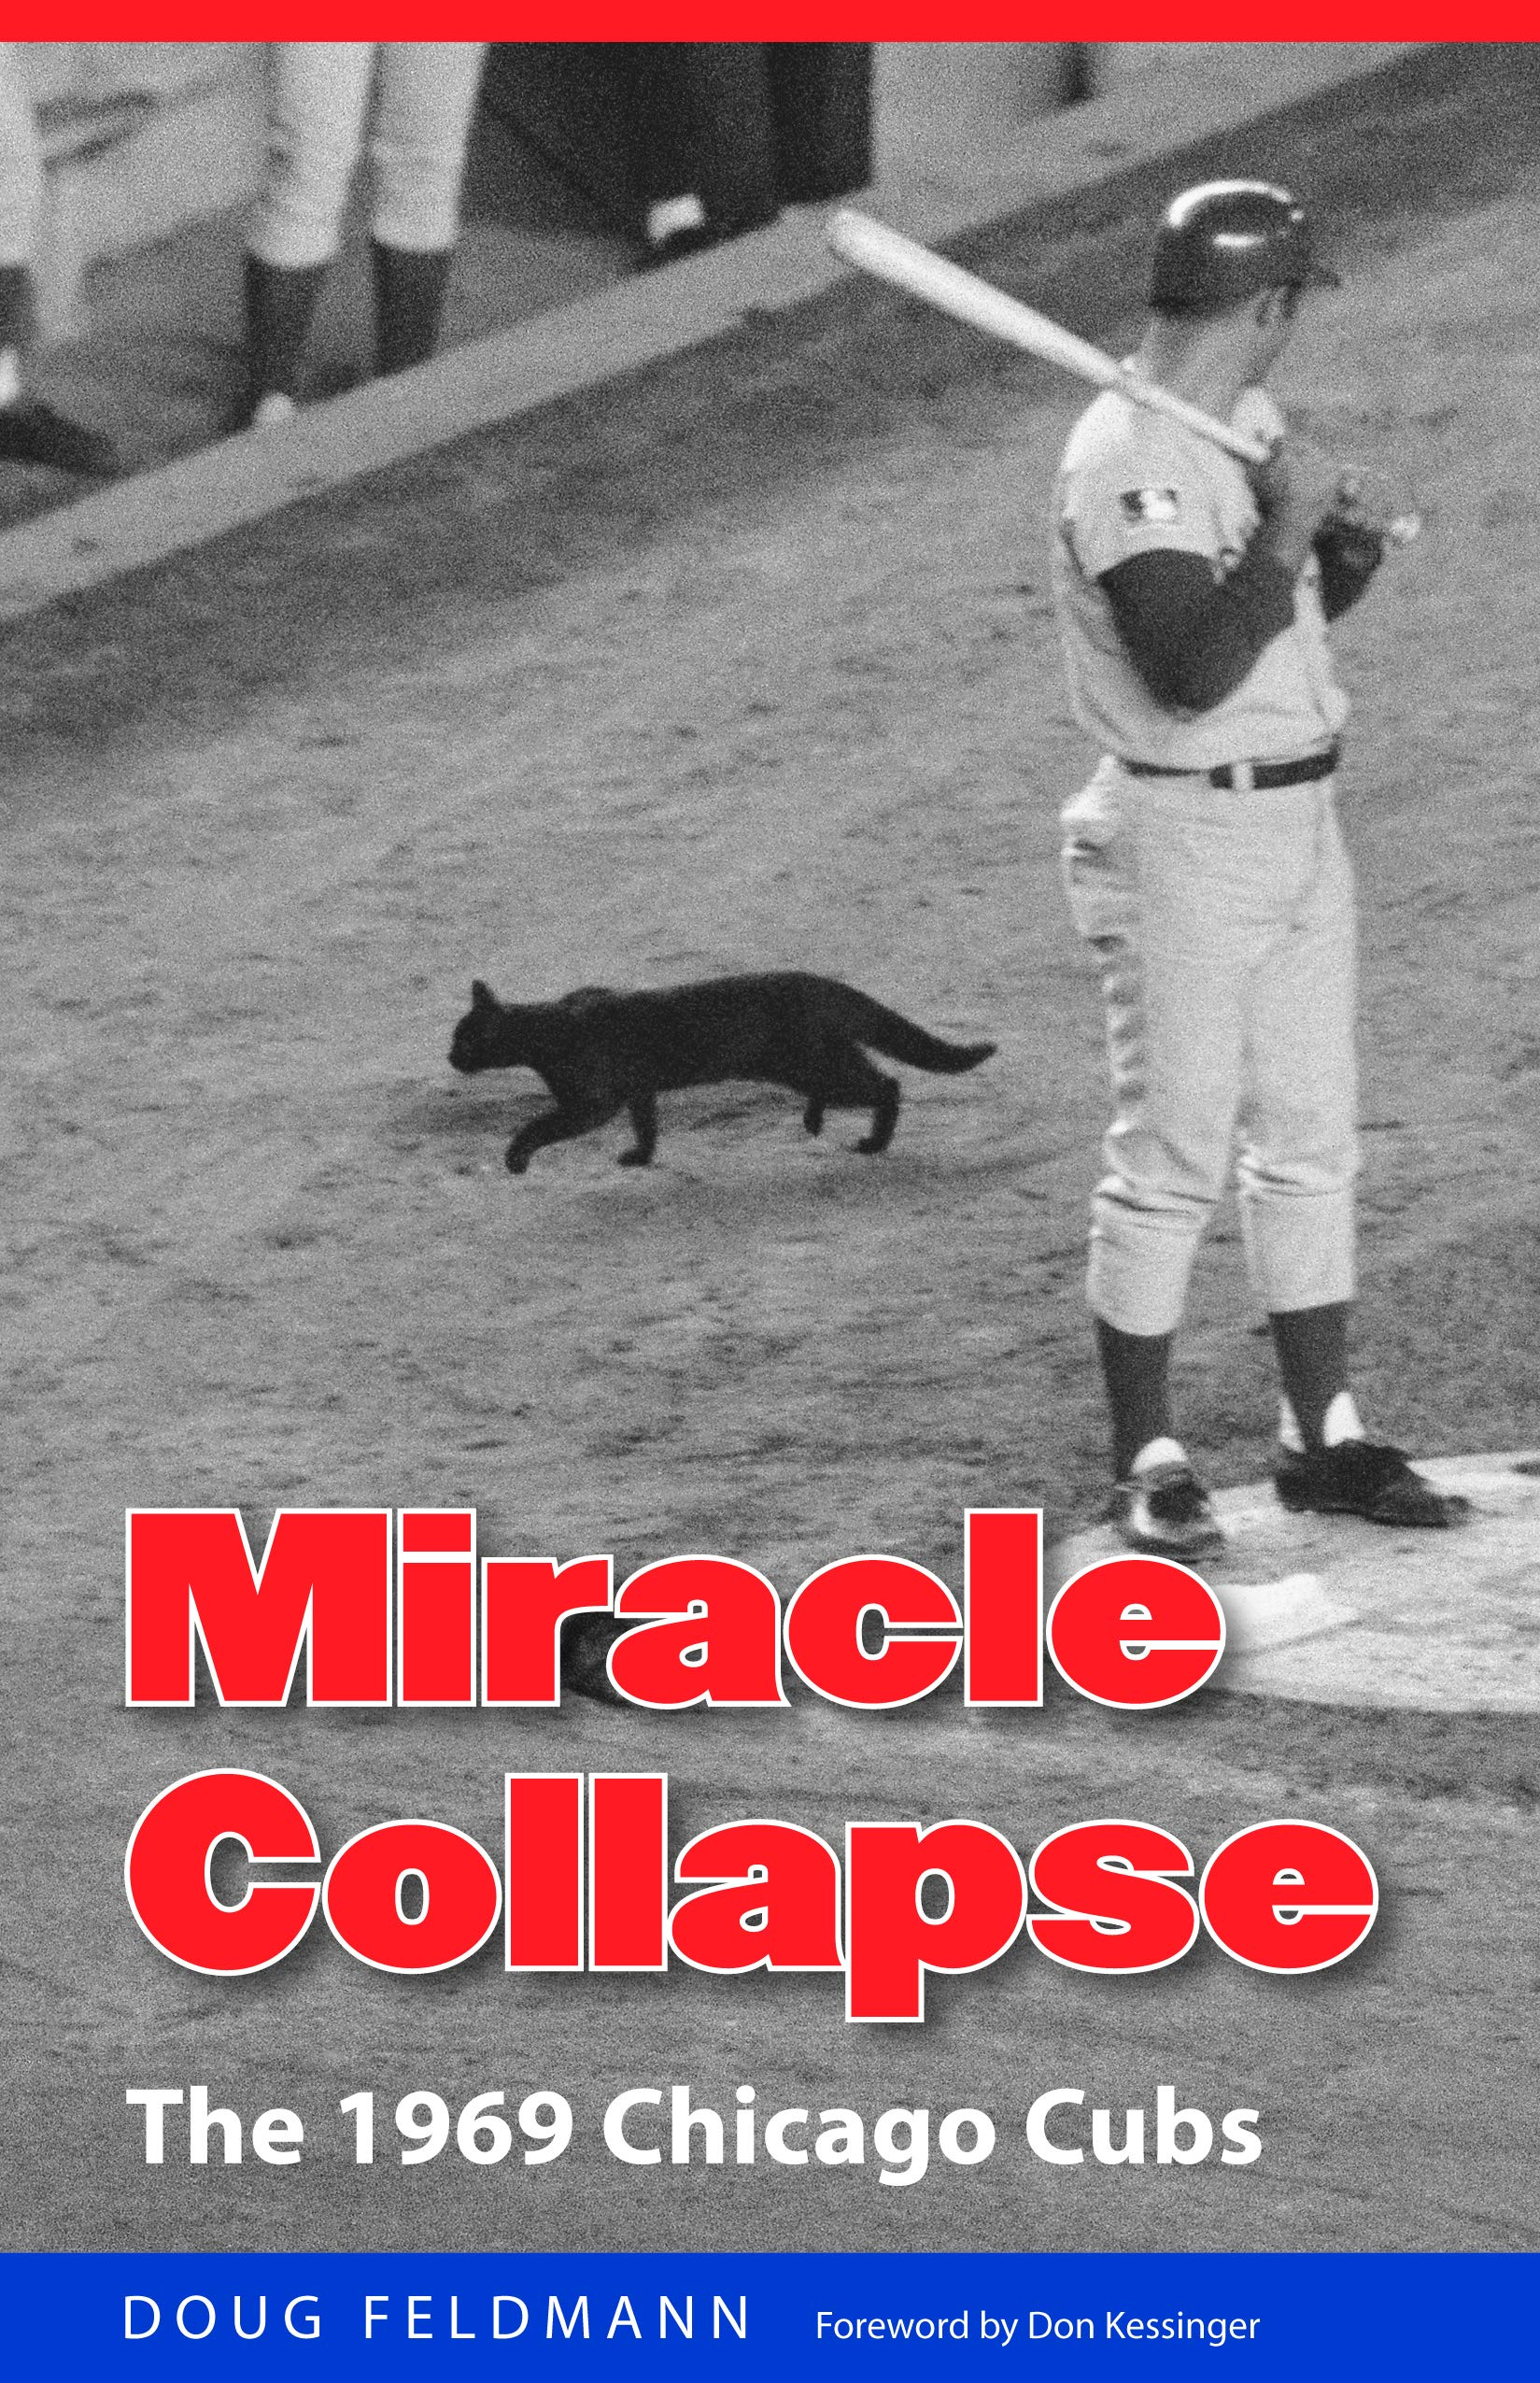 Miracle Collapse: The 1969 Chicago Cubs by Brand: Bison Books